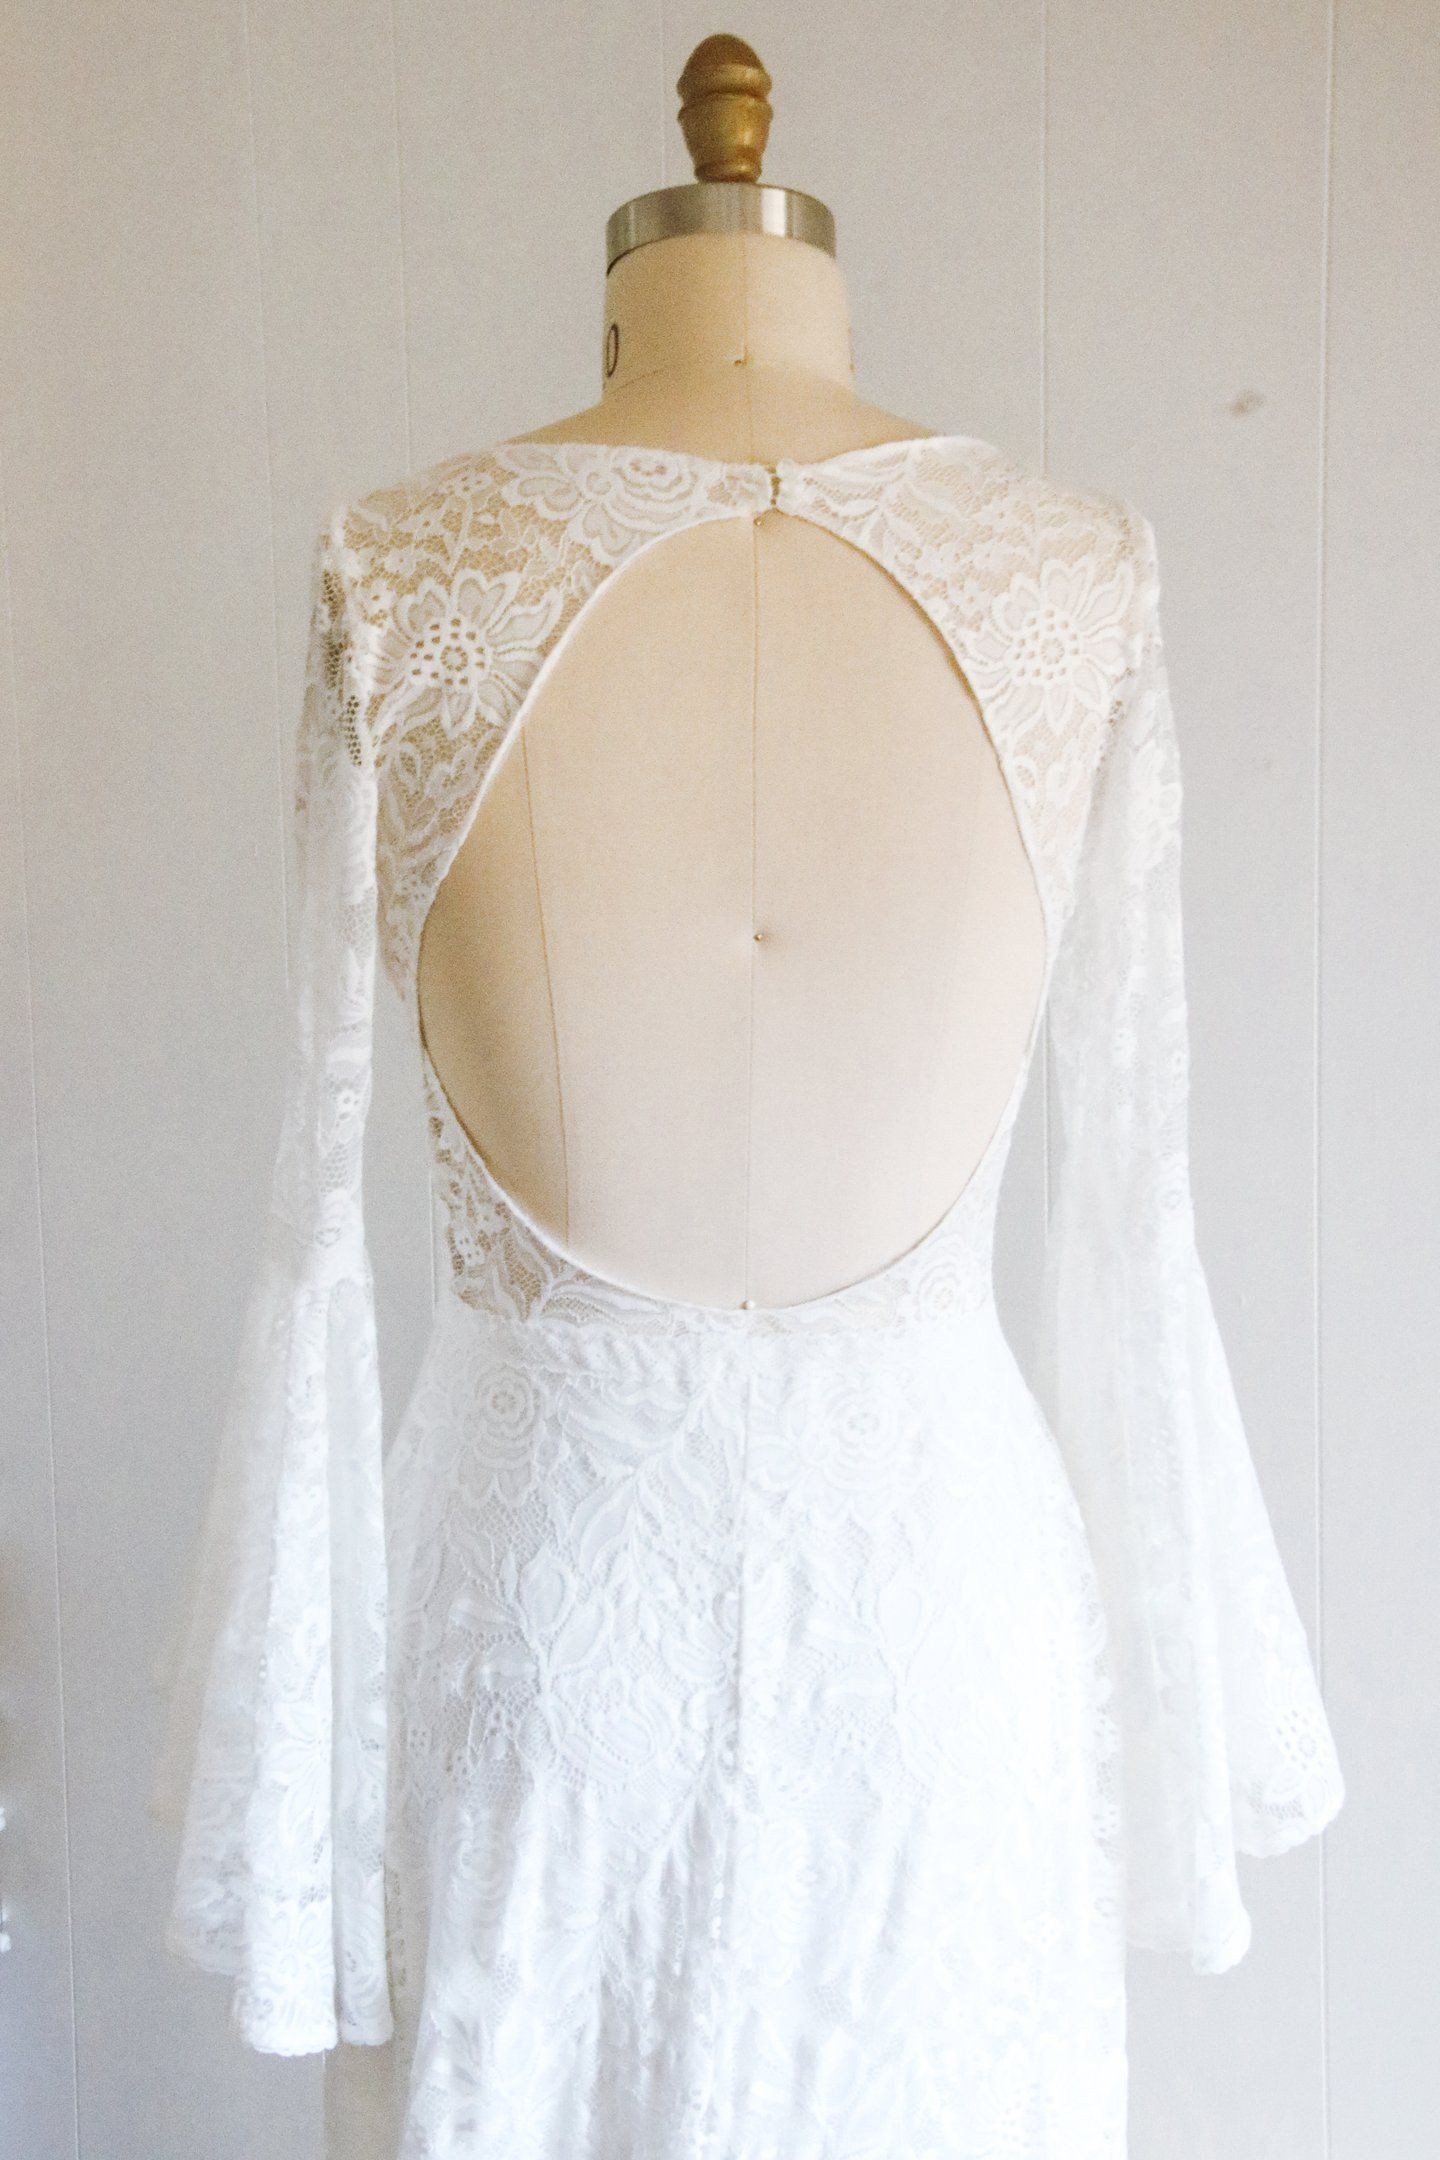 Joni in our gowns pinterest wedding dresses gowns and